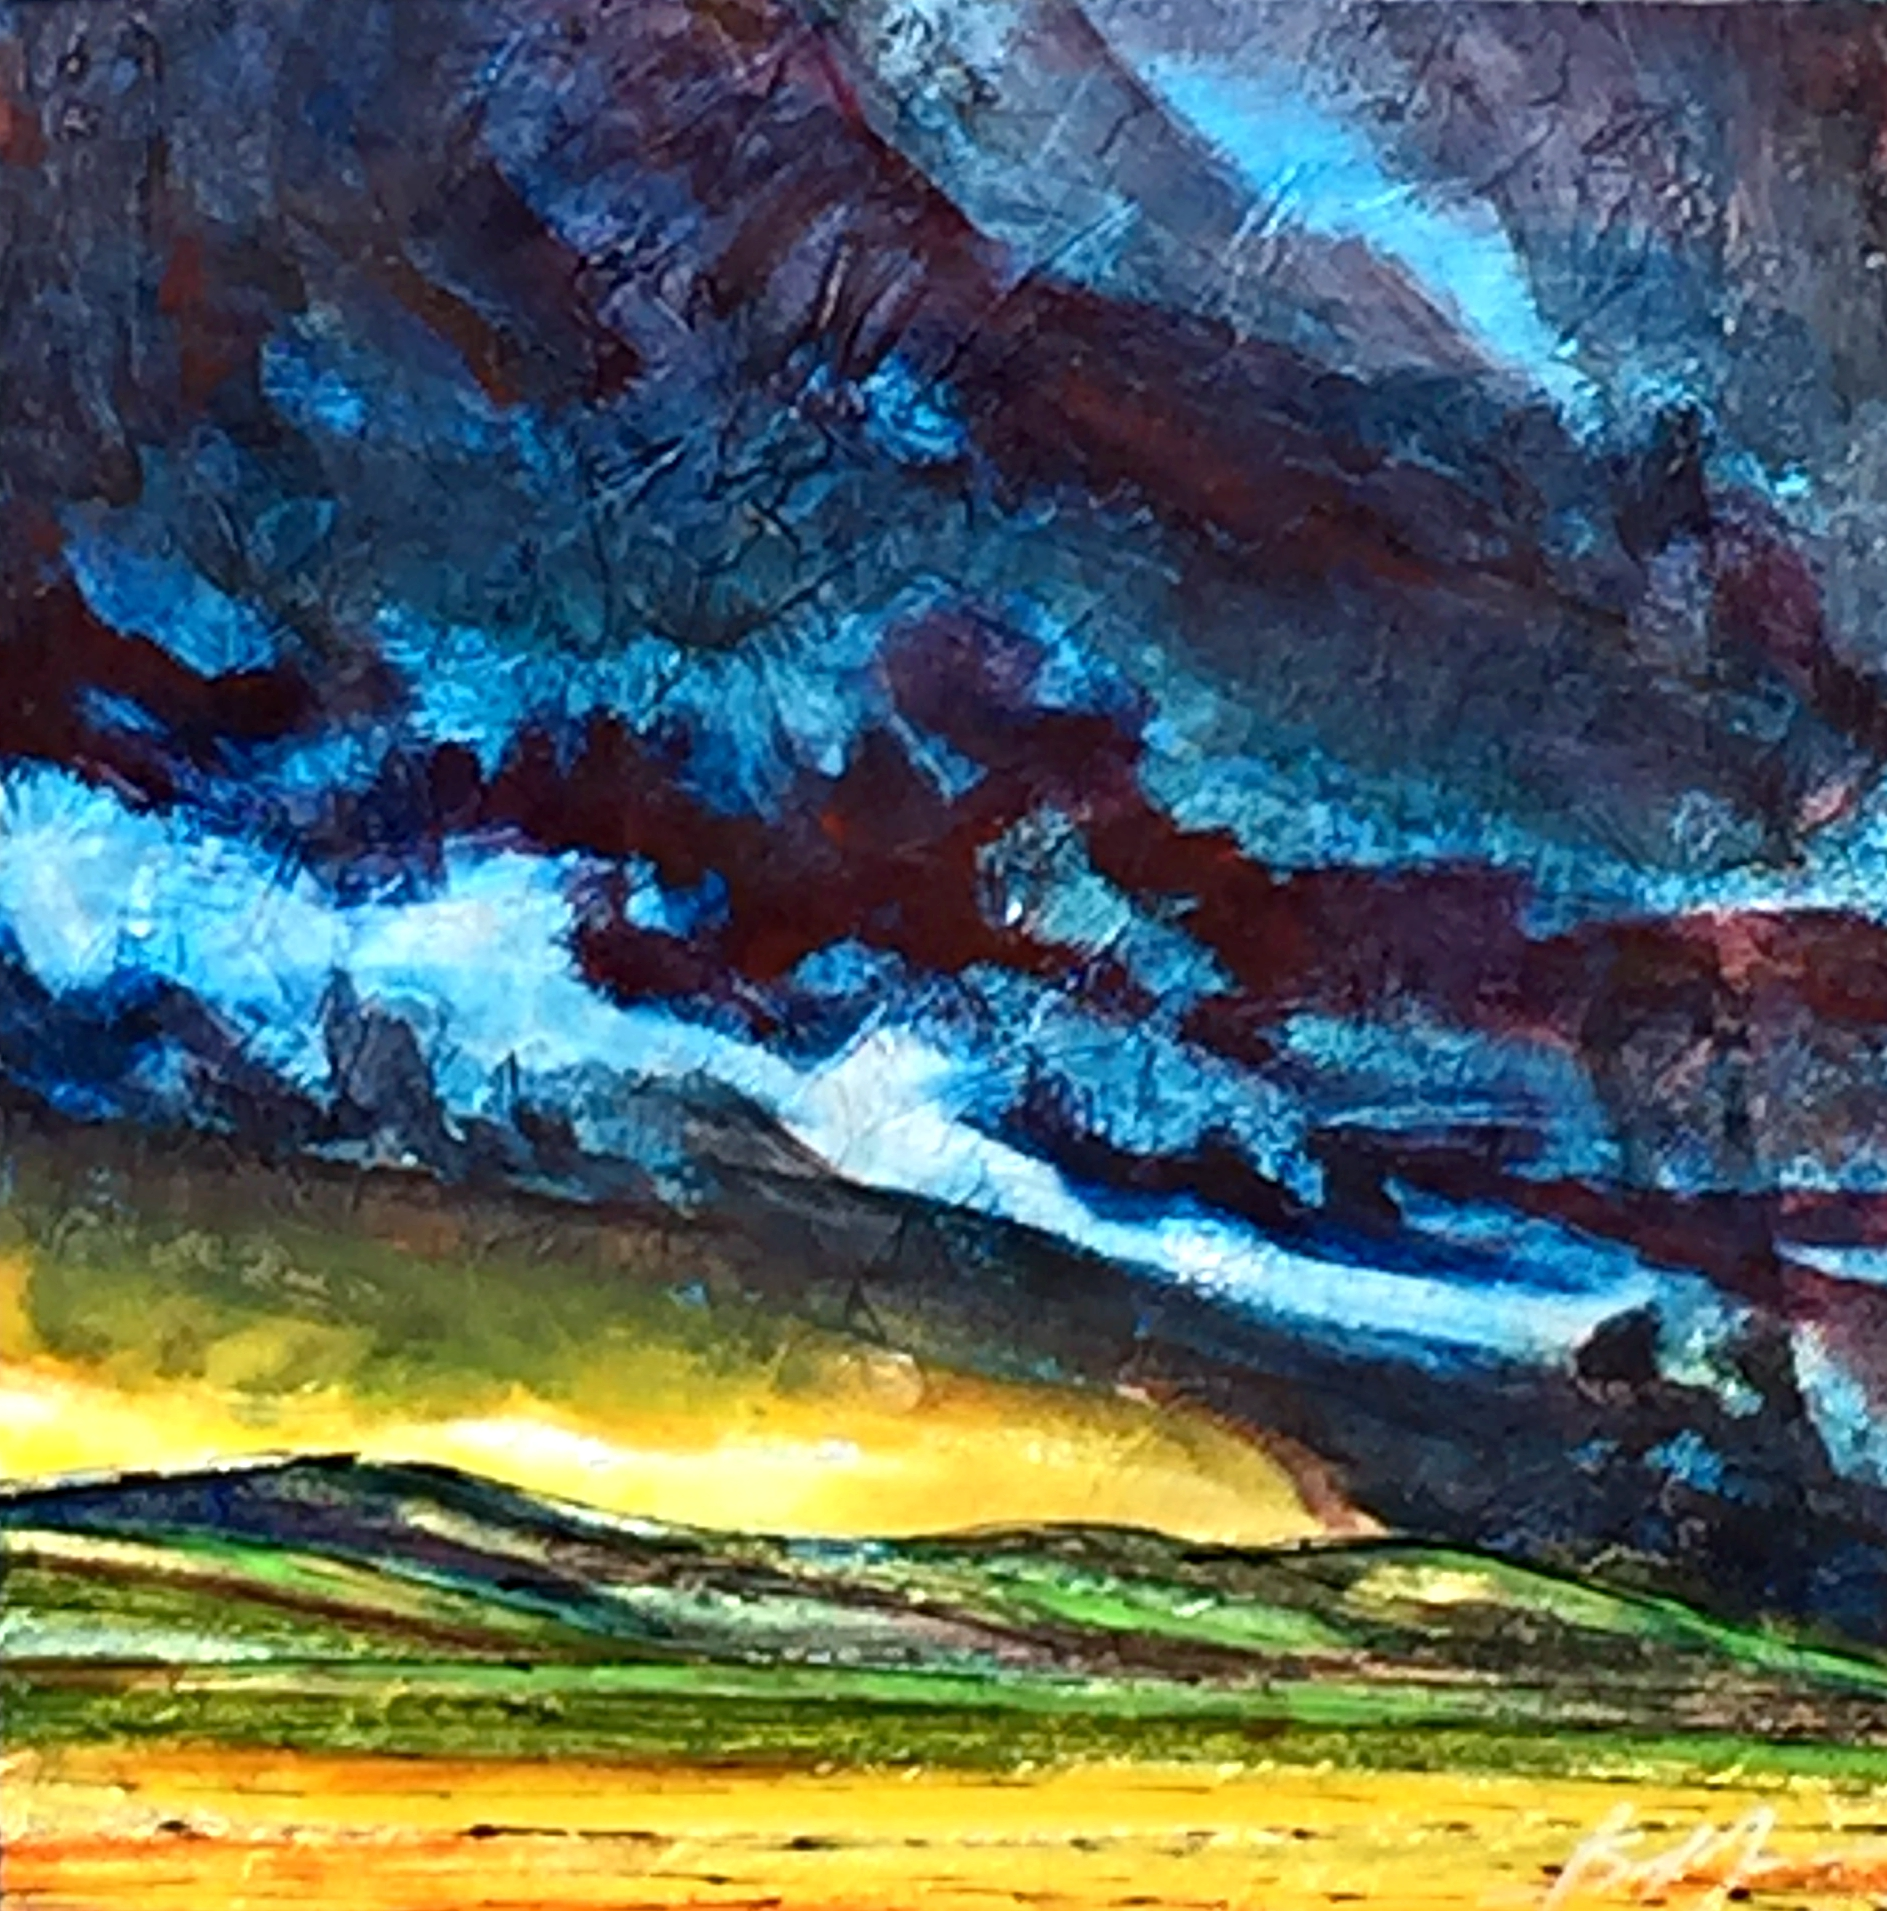 Summer Brooding, mixed media landscape painting by David Zimmerman | Effusion Art Gallery + Cast Glass Studio, Invermere BC